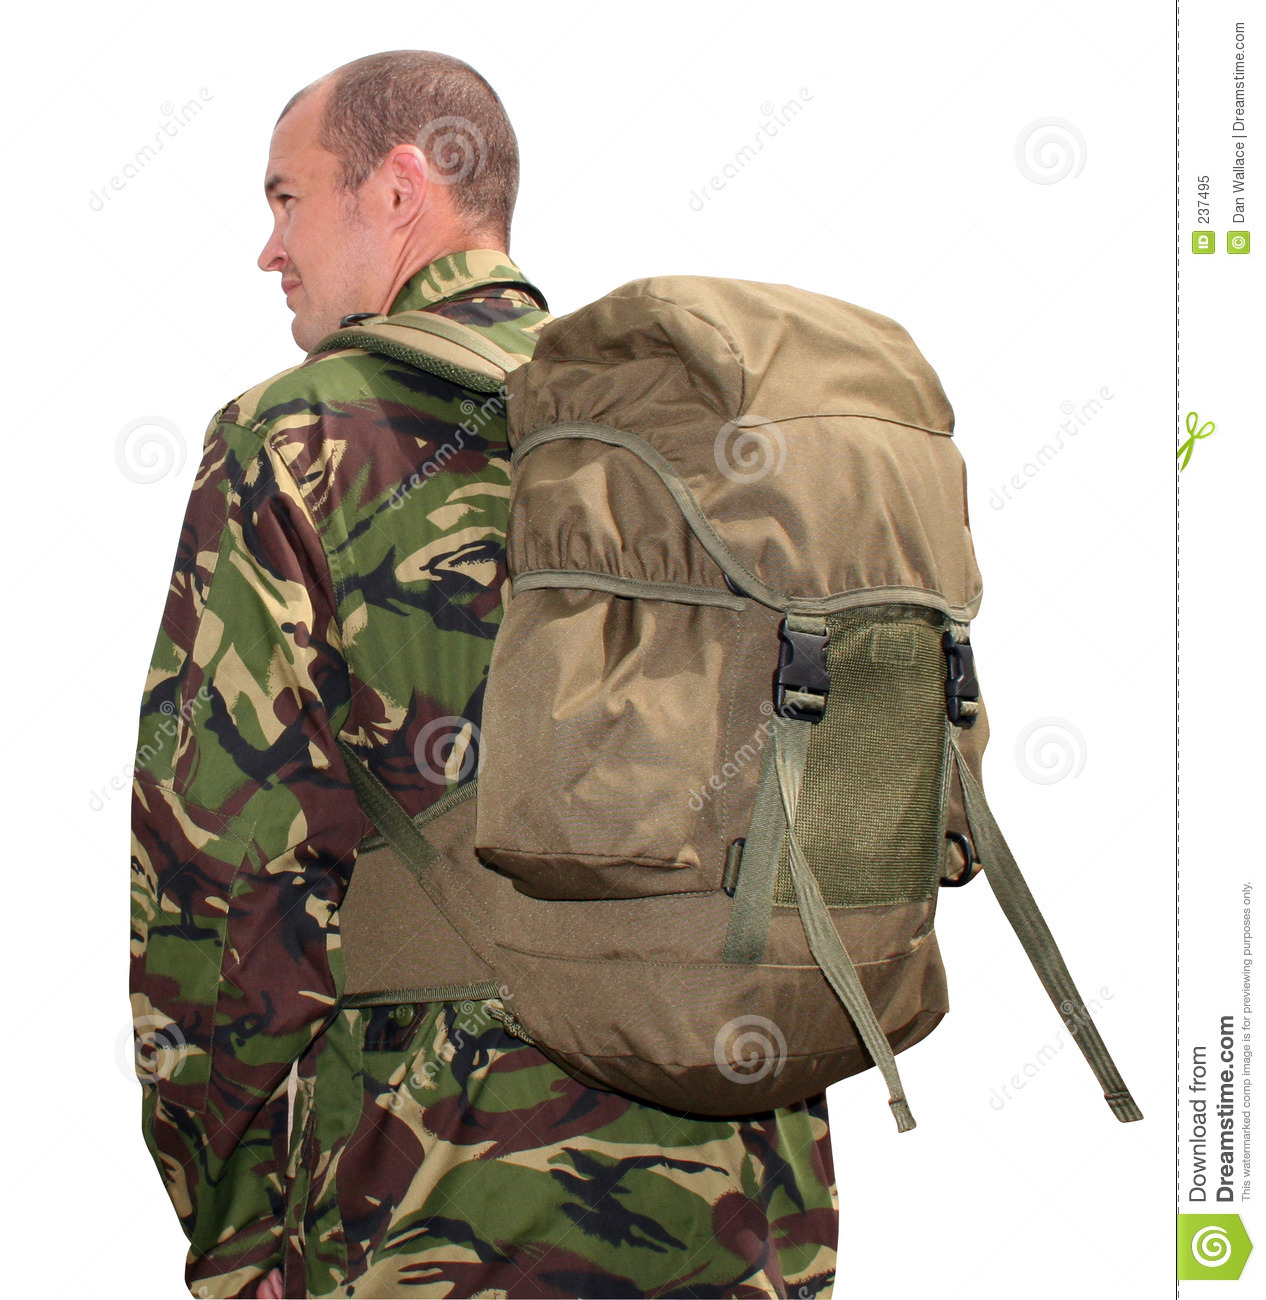 Army Man Wearing Rucksack Royalty Free Stock Photo Image